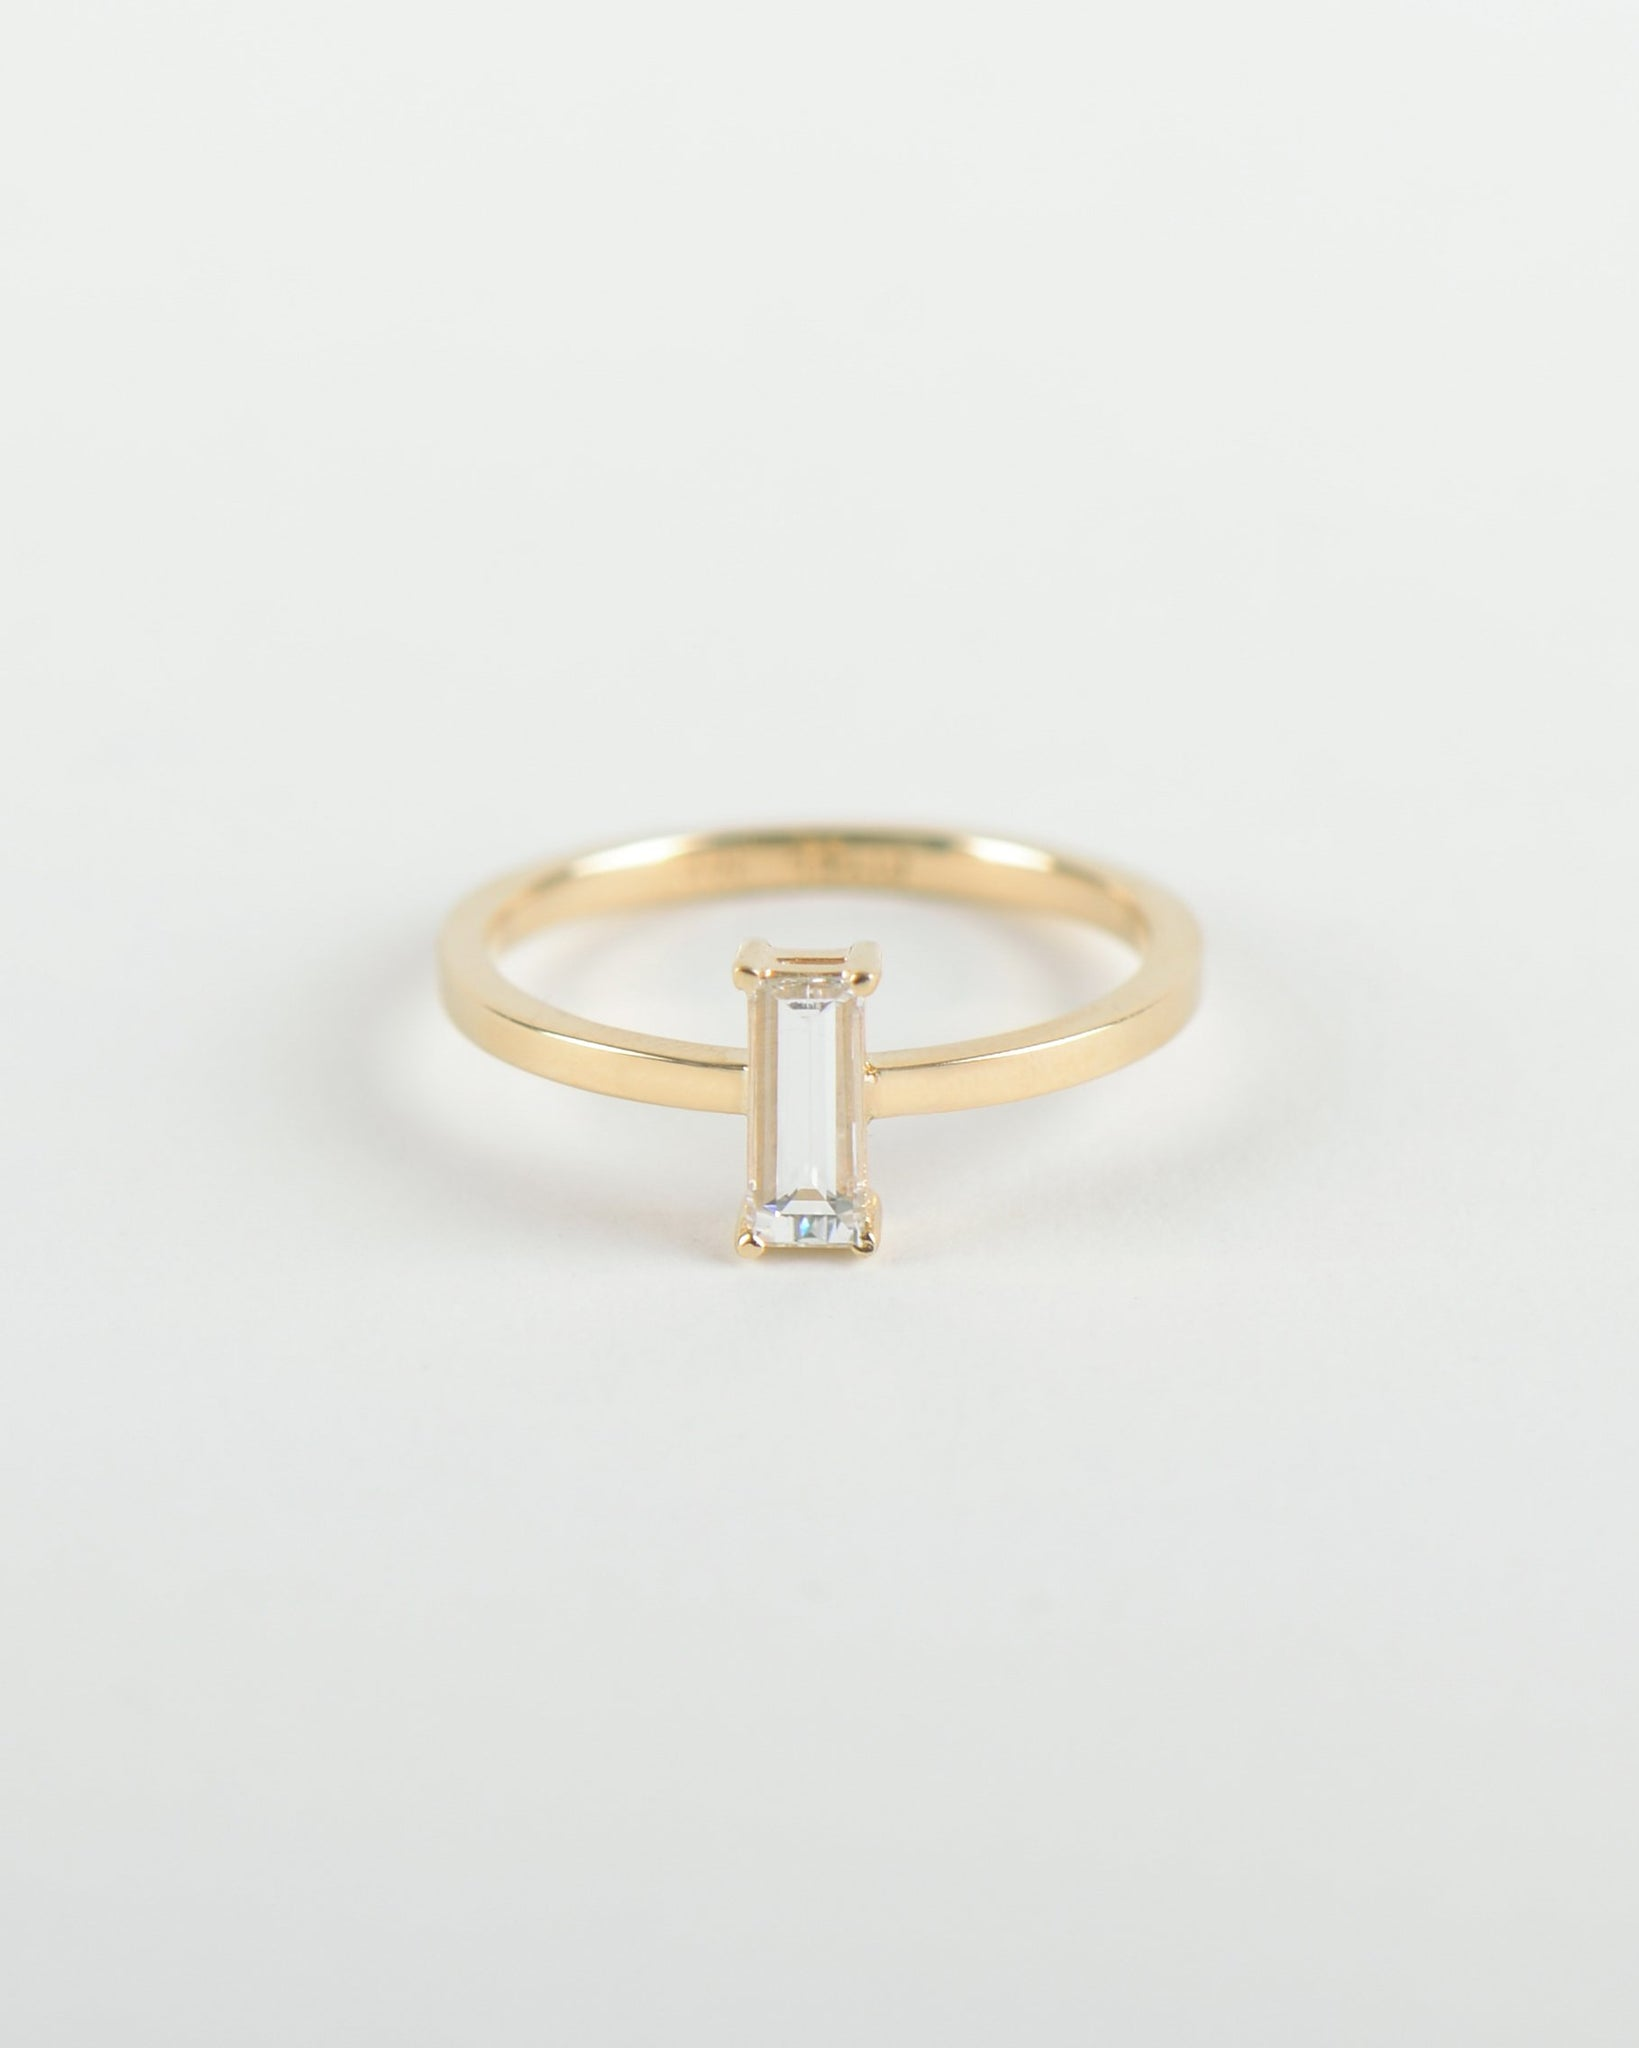 Liaisons Baguette Ring in Yellow Gold with a Diamond